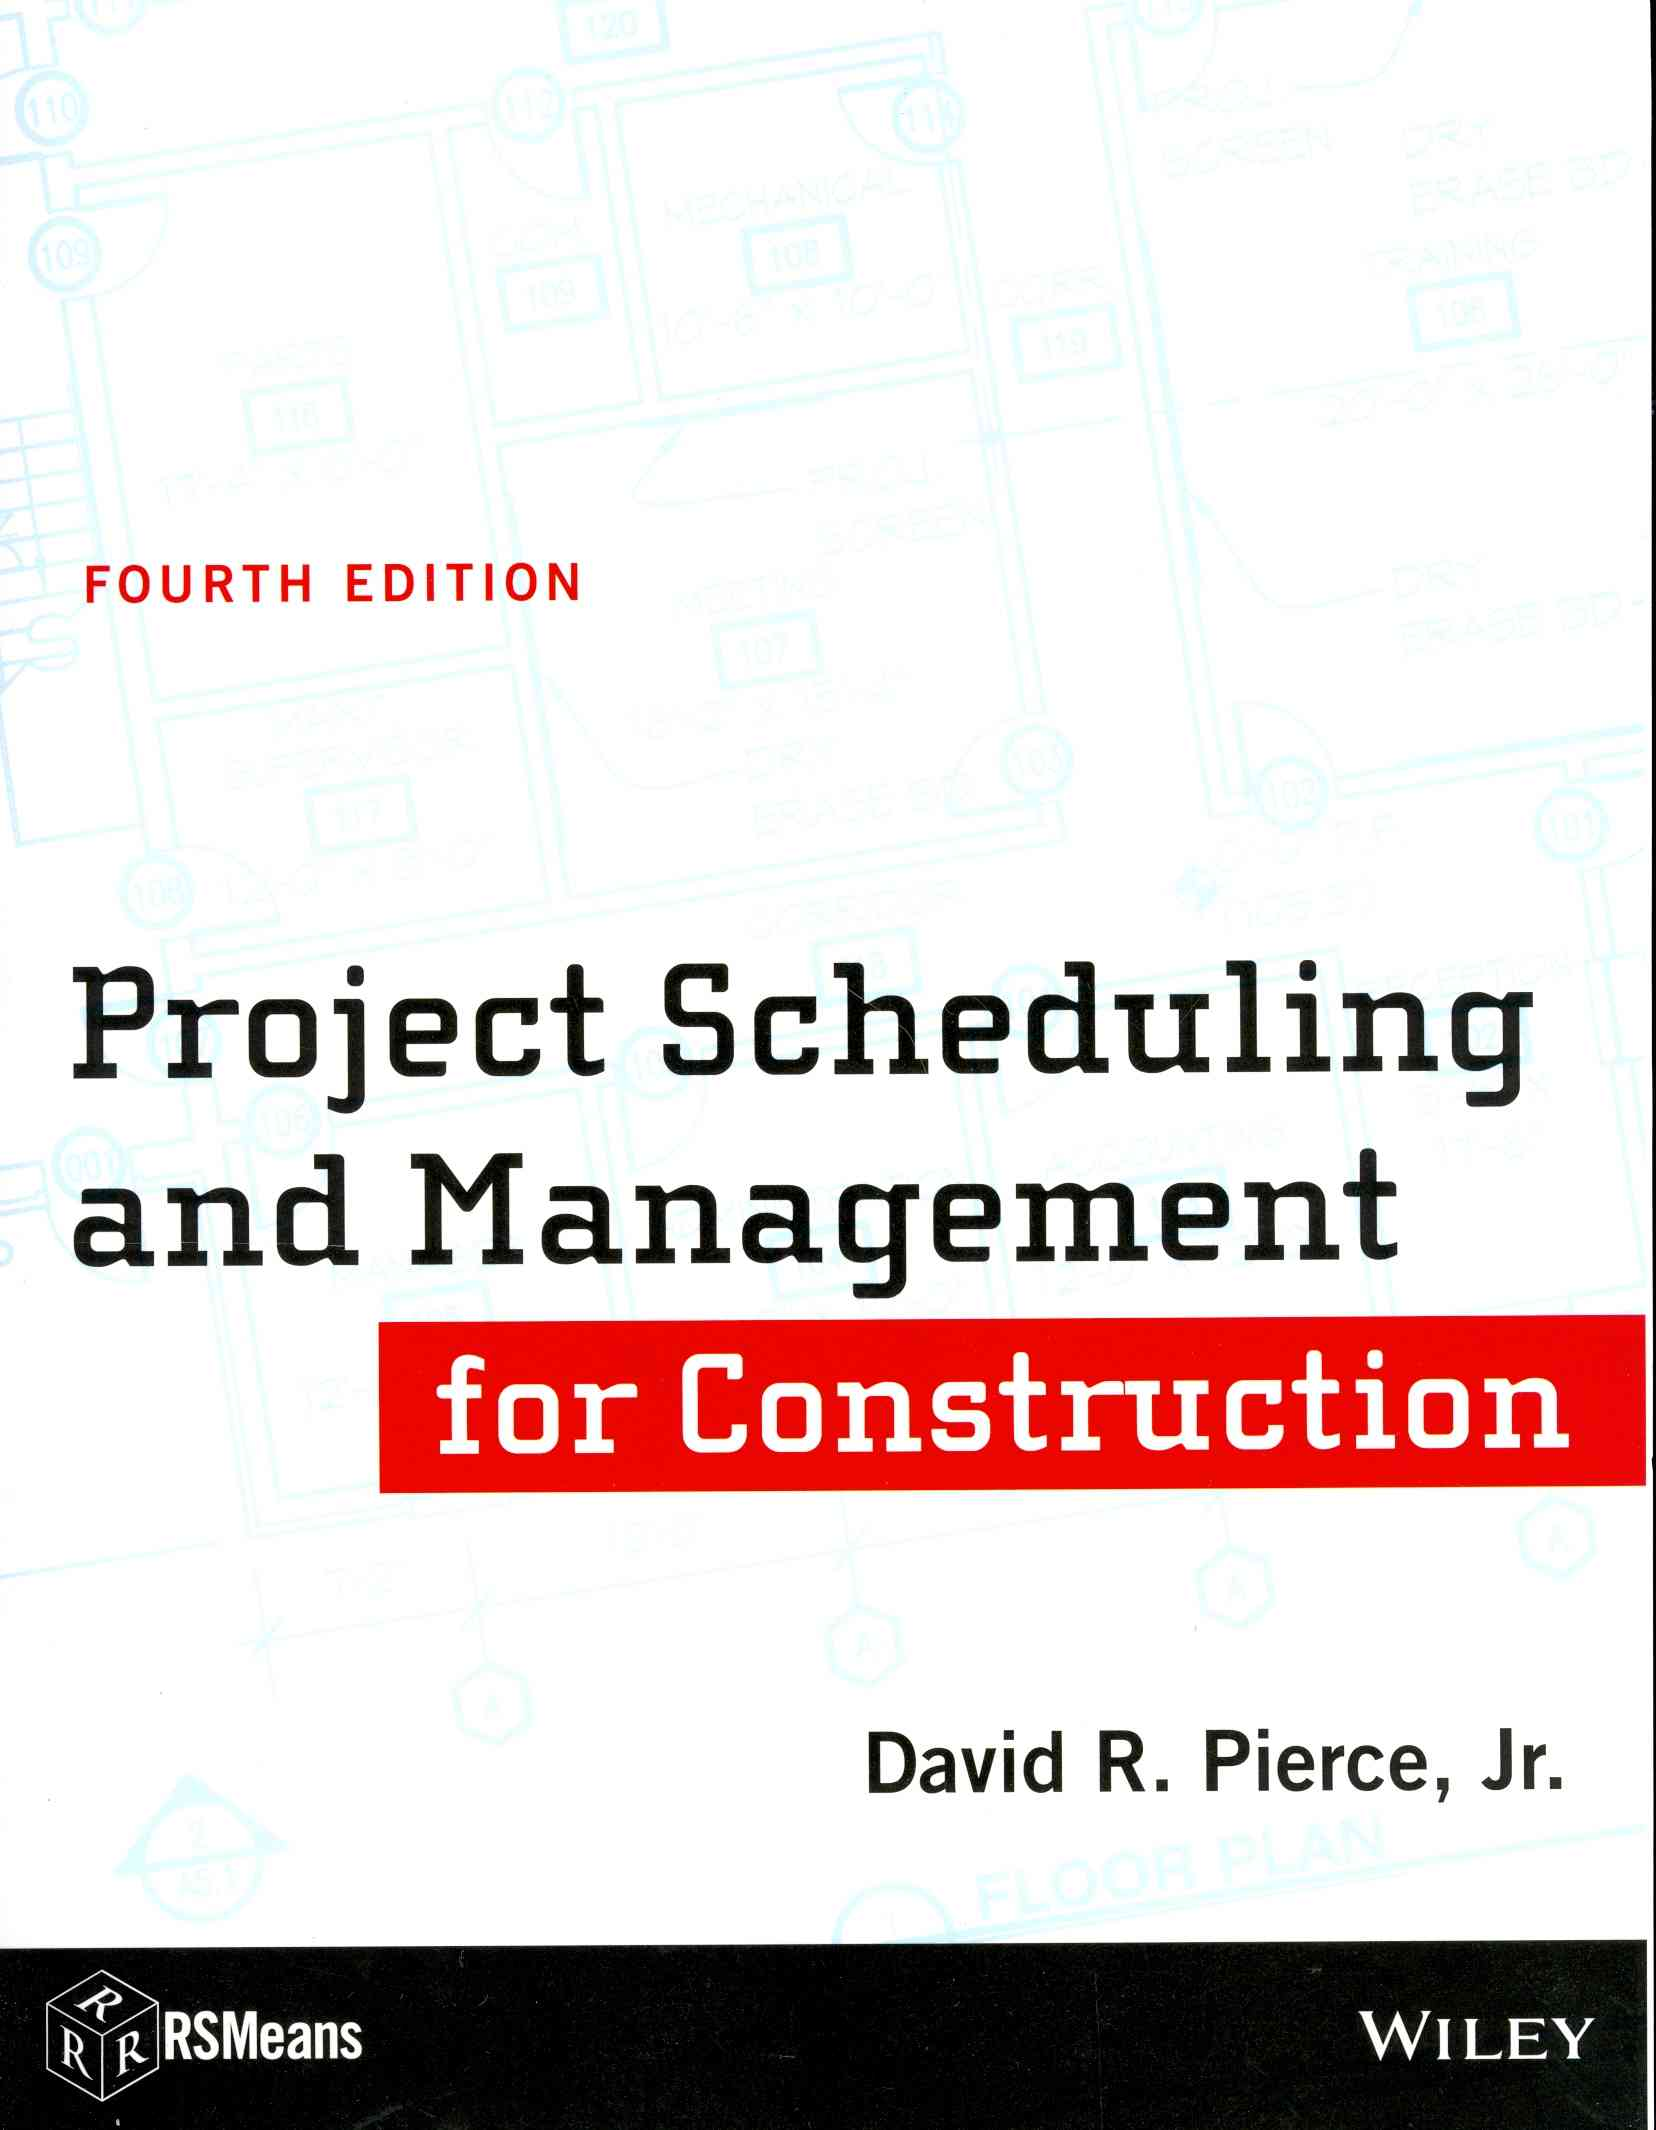 Project Scheduling and Management for Construction By Pierce, David R., Jr.